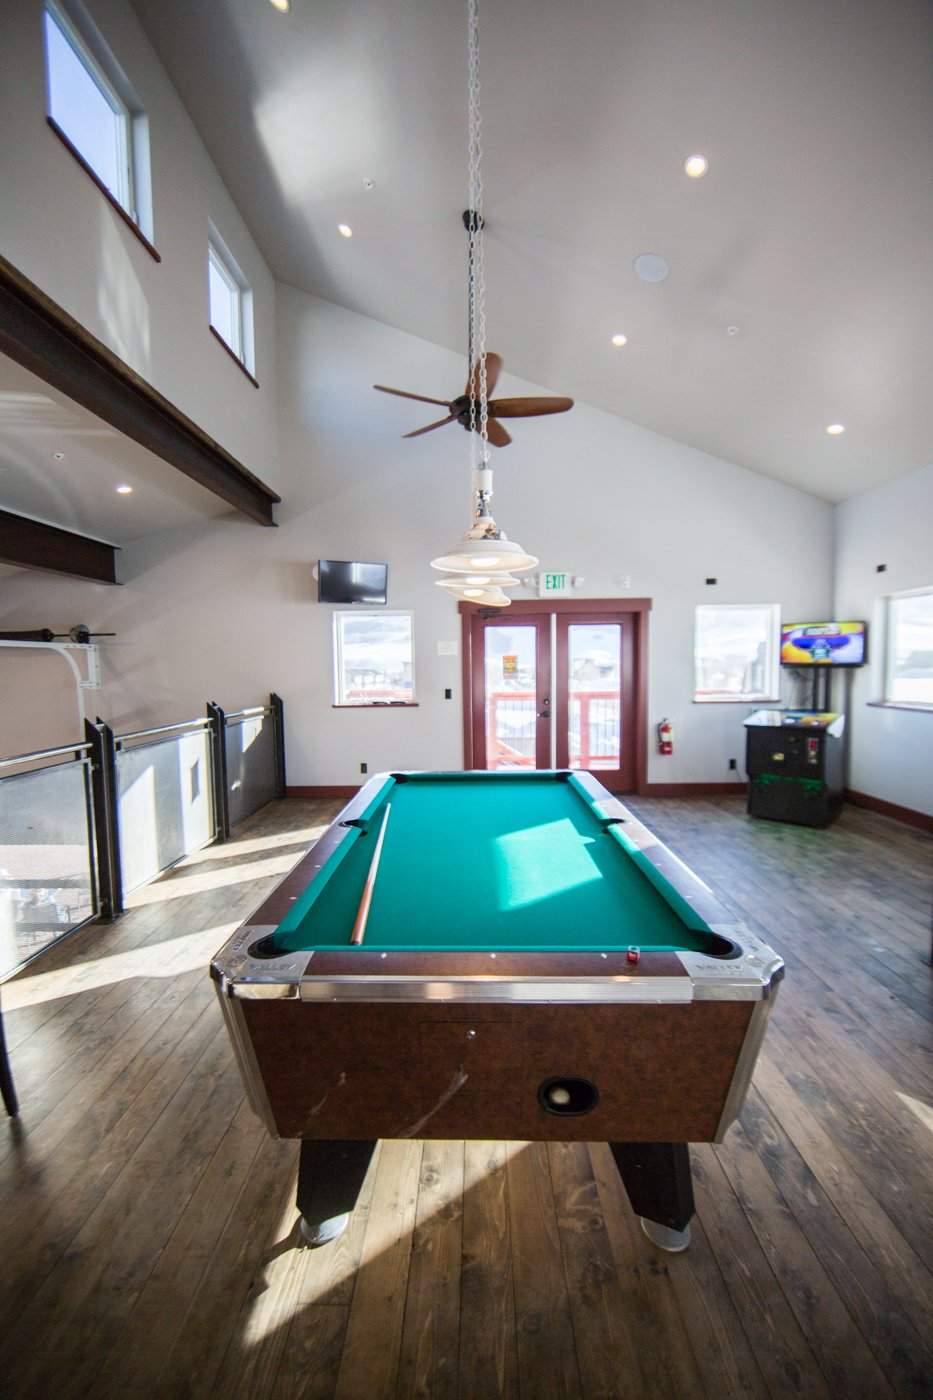 Tully's pool table